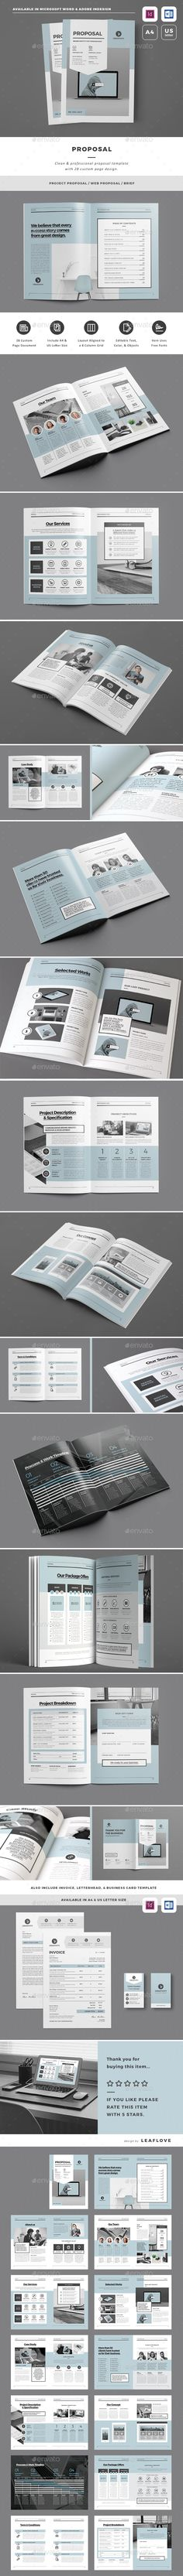 Proposal Proposals, Proposal templates and Brochures - professional proposal template